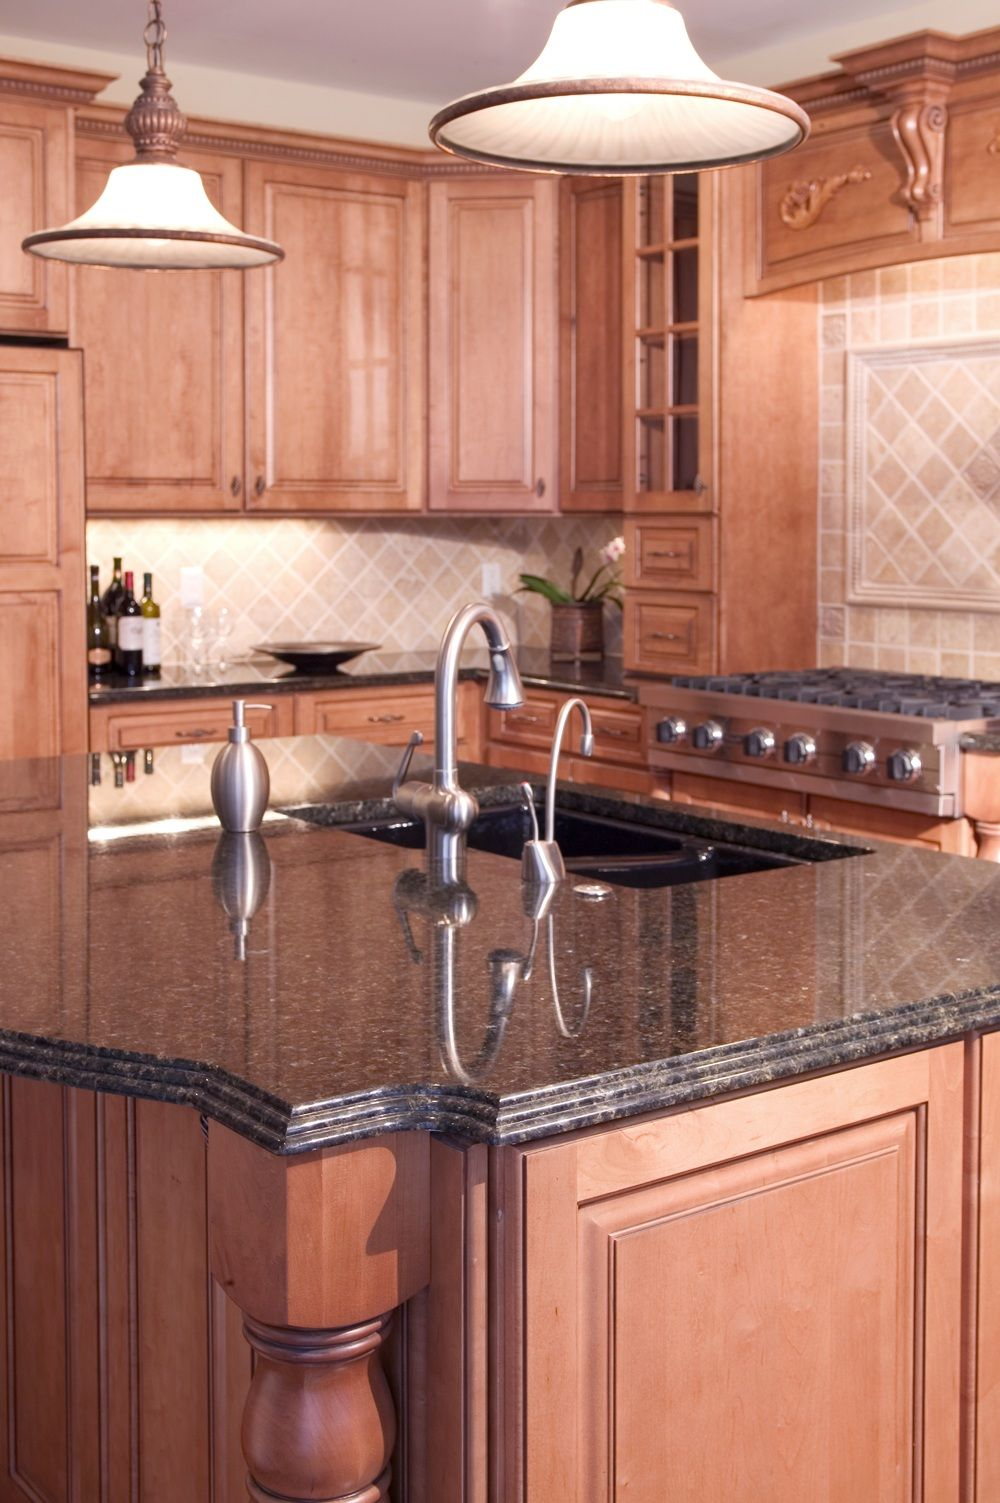 black kitchen countertops kitchen cabinets and countertops beige granite countertop colors yellow granite countertop colors black